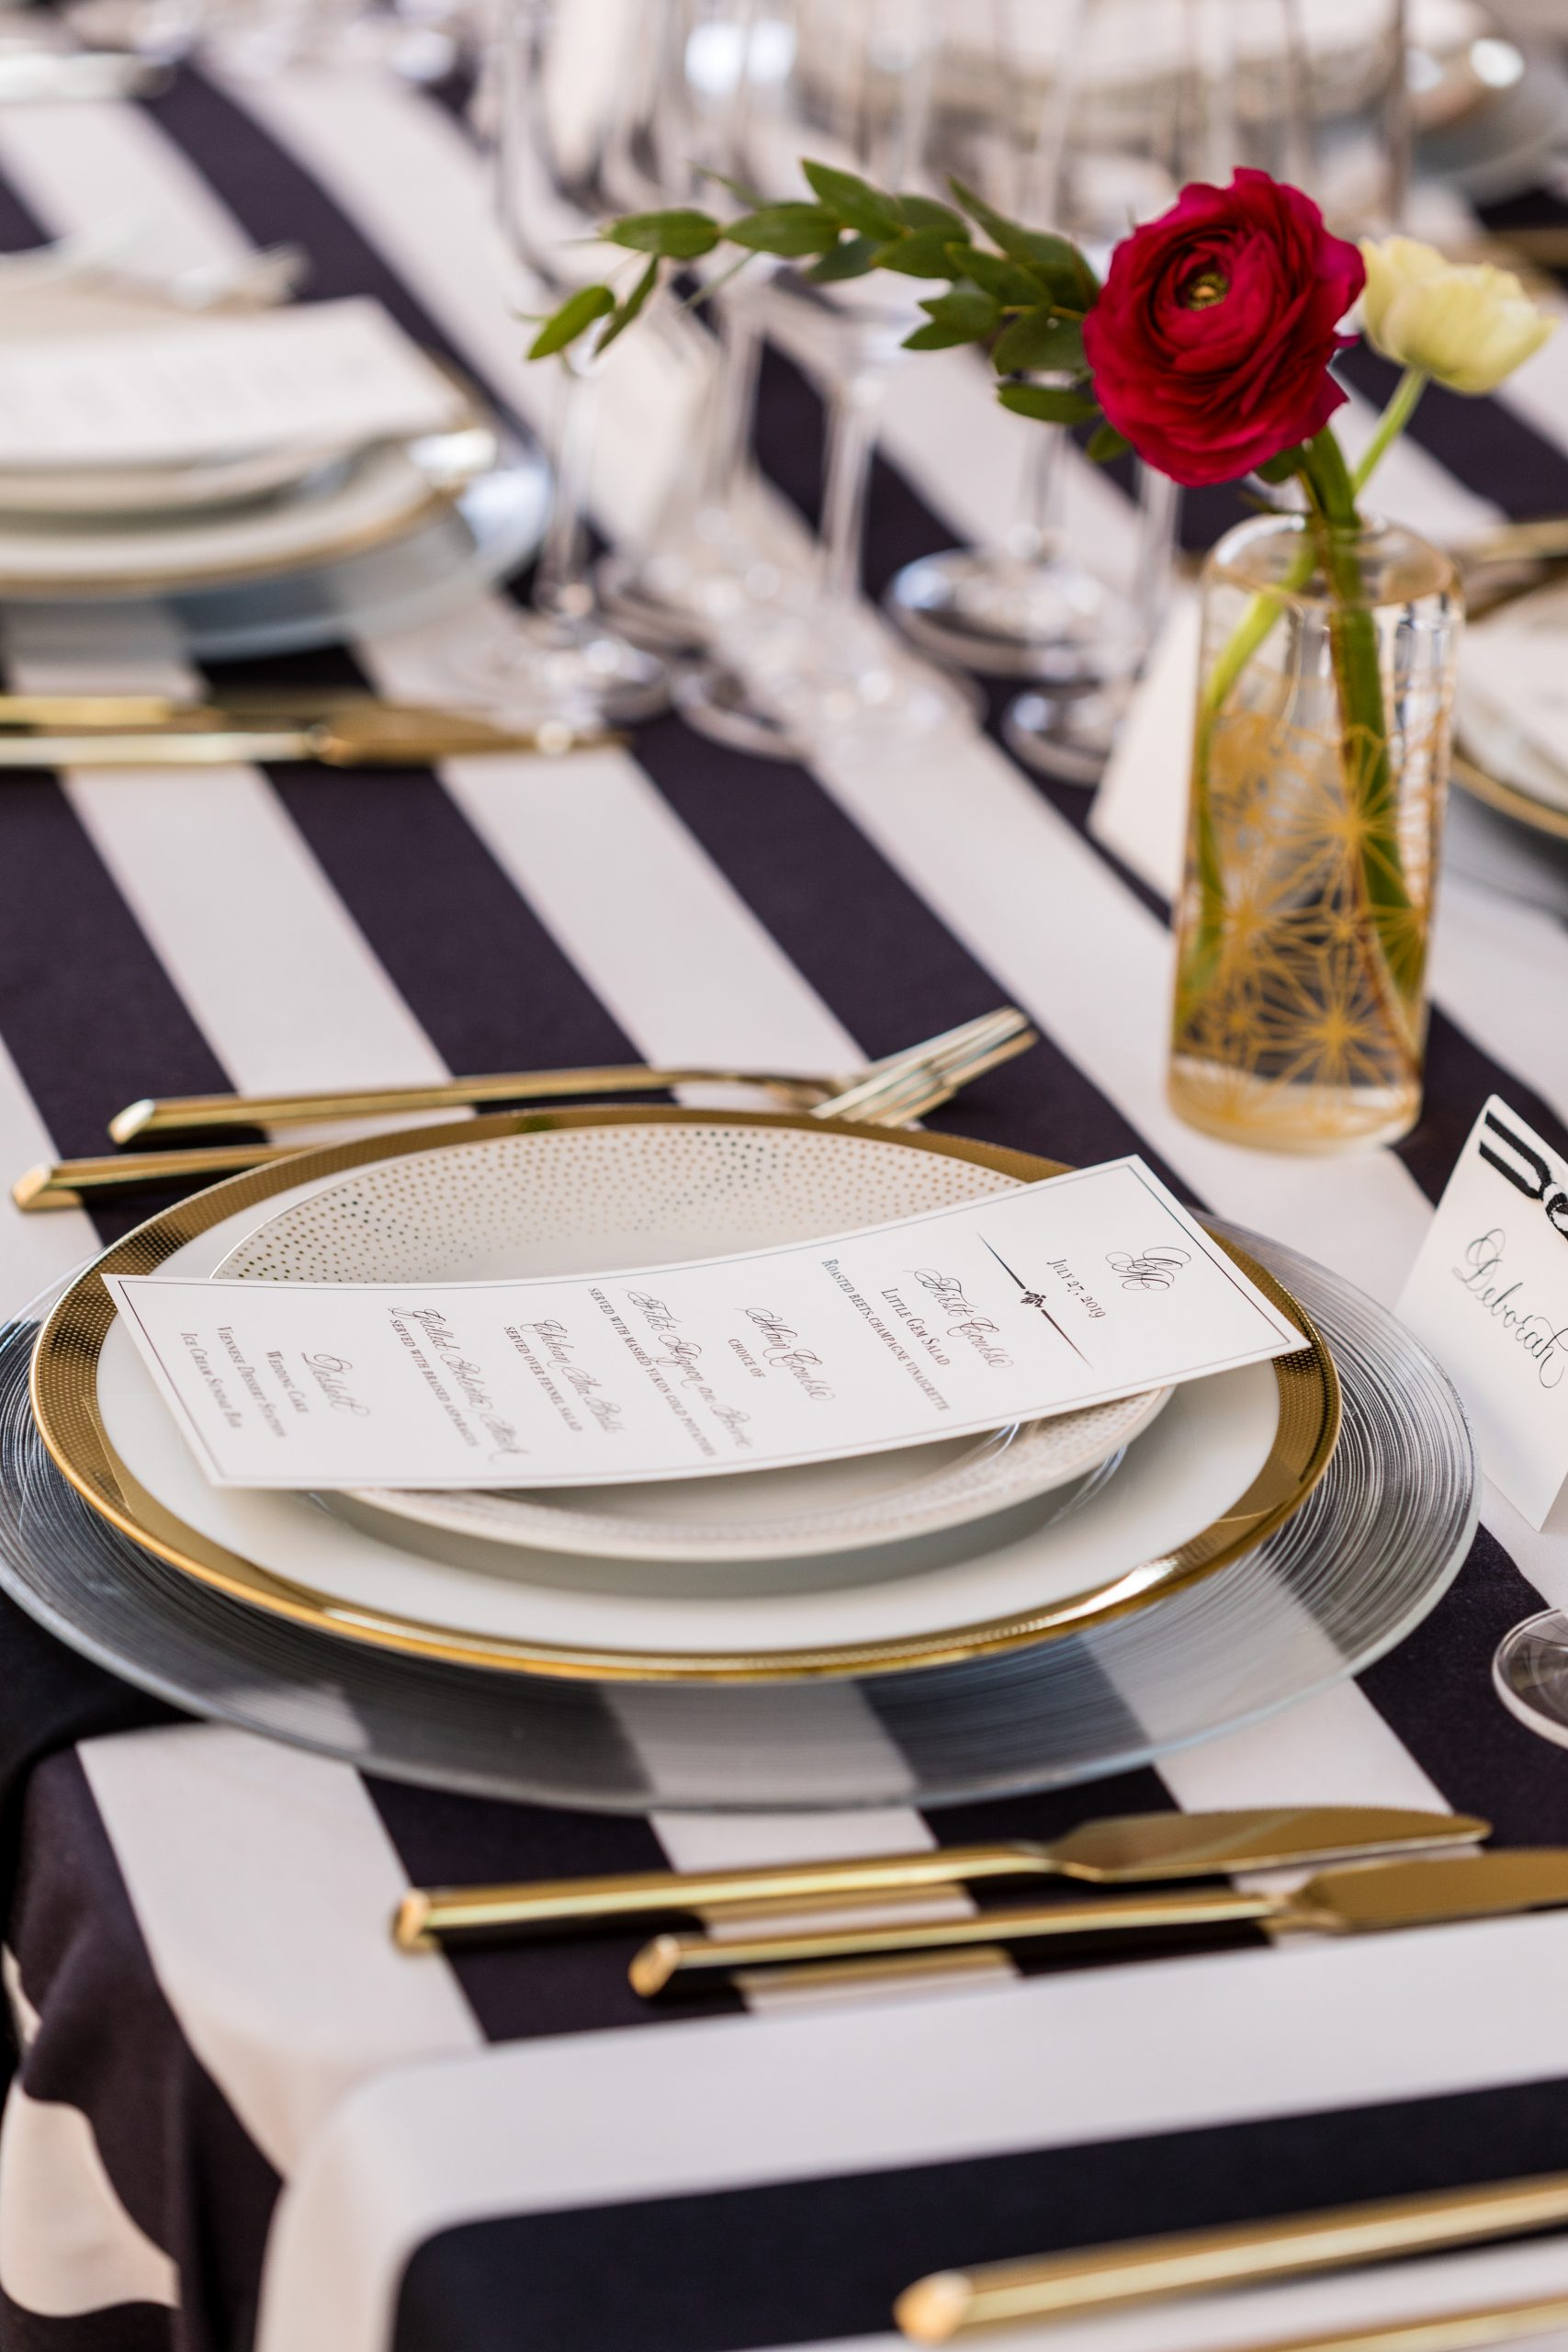 Charger plates, dinner and salad plates stacked with style at the Michener Museum styled urban contemporary shoot for Ashley Gerrity Photography this past Summer. Featured on Dream Weddings.